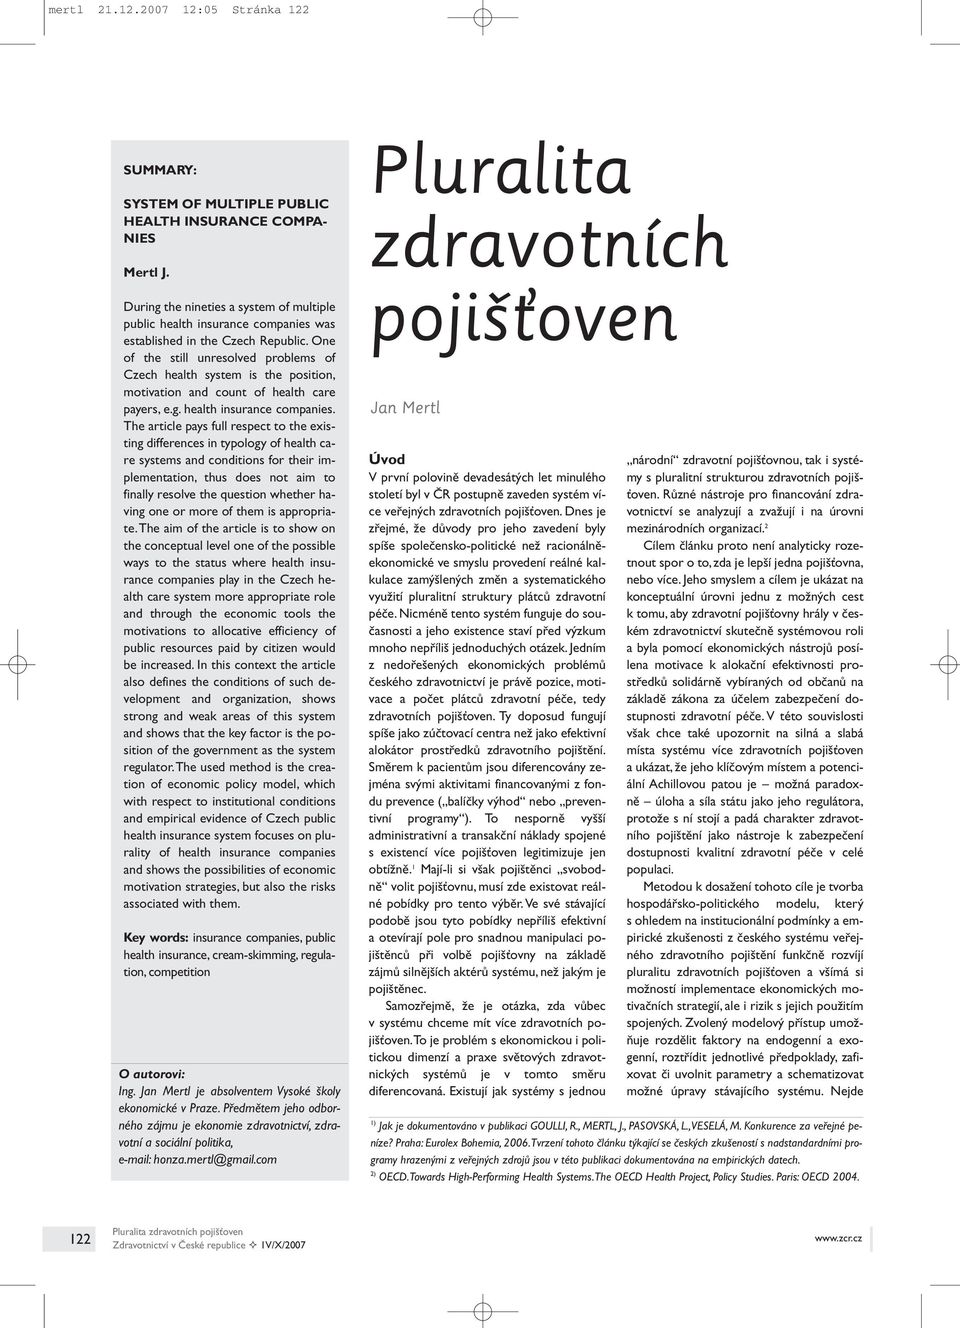 One of the still unresolved problems of Czech health system is the position, motivation and count of health care payers, e.g. health insurance companies.